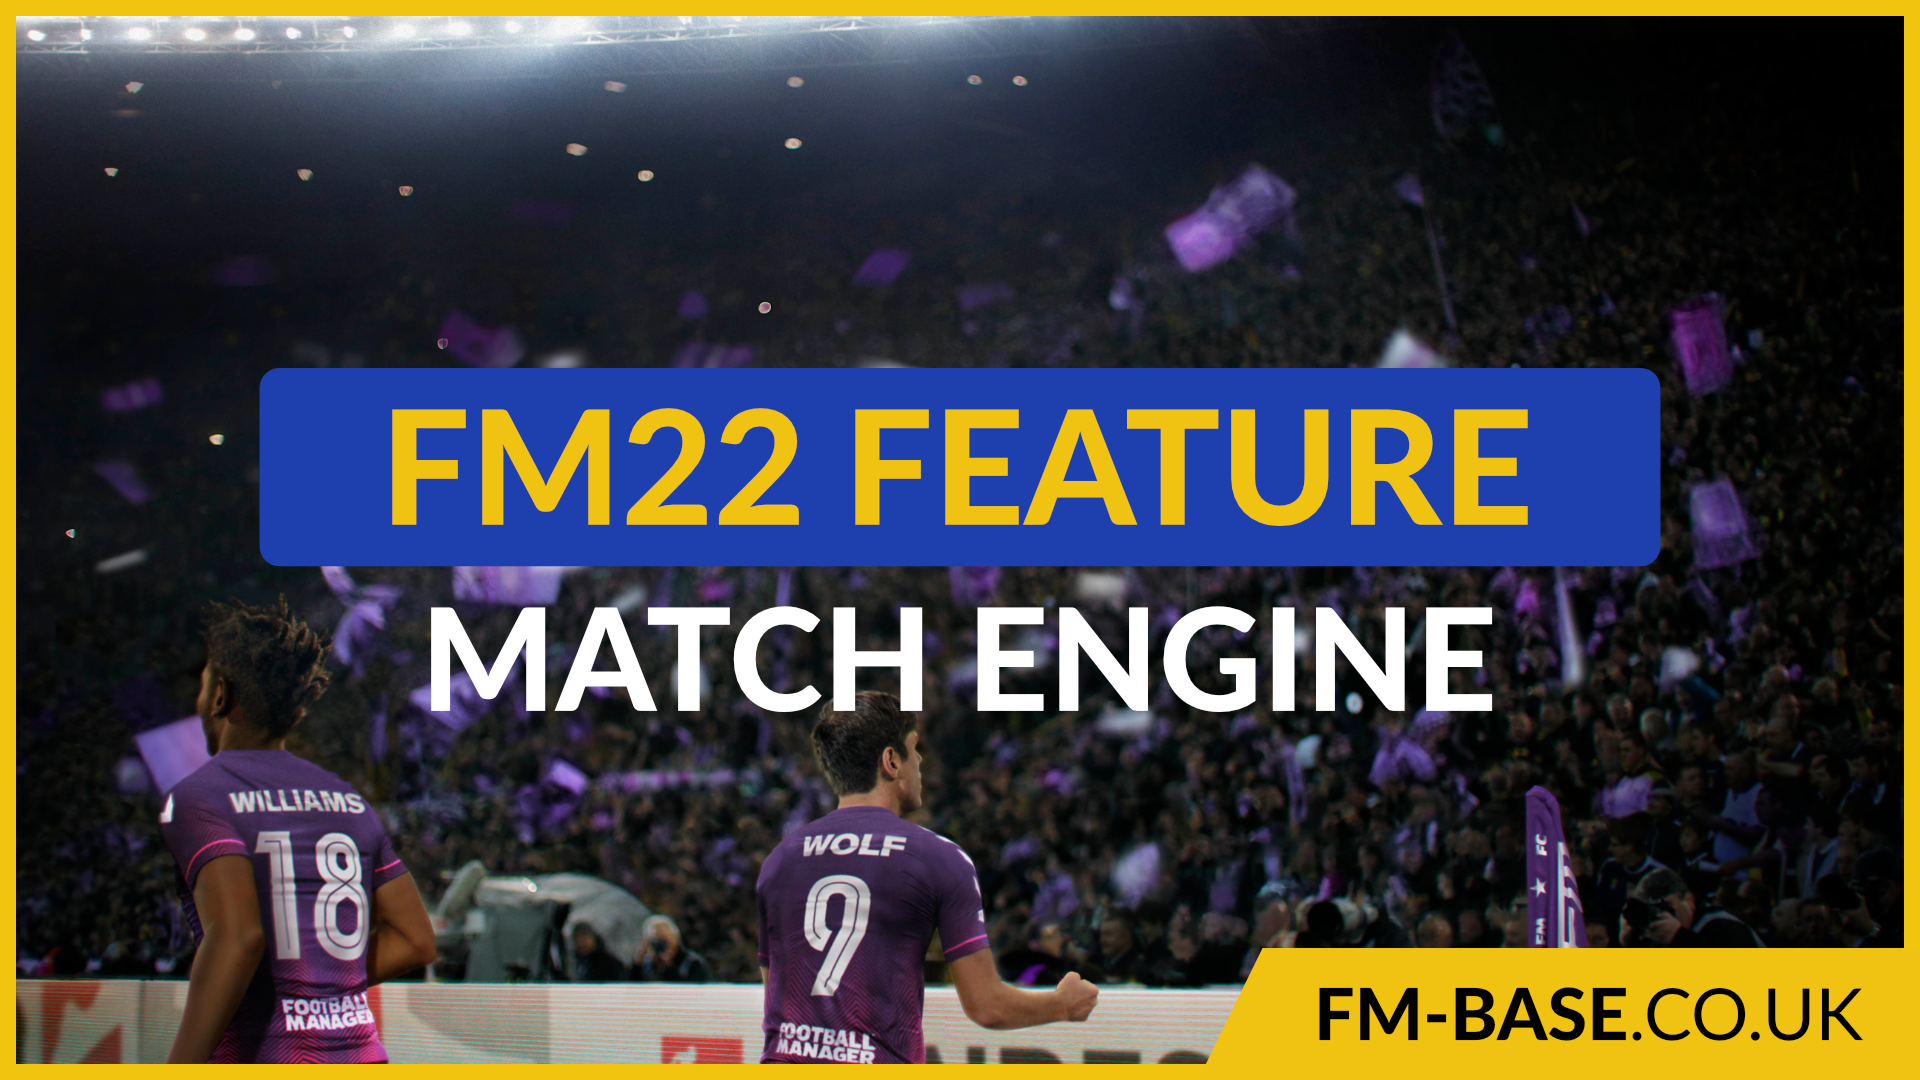 """""""The Match Engine is going to be a bit different in FM22"""" feature image"""